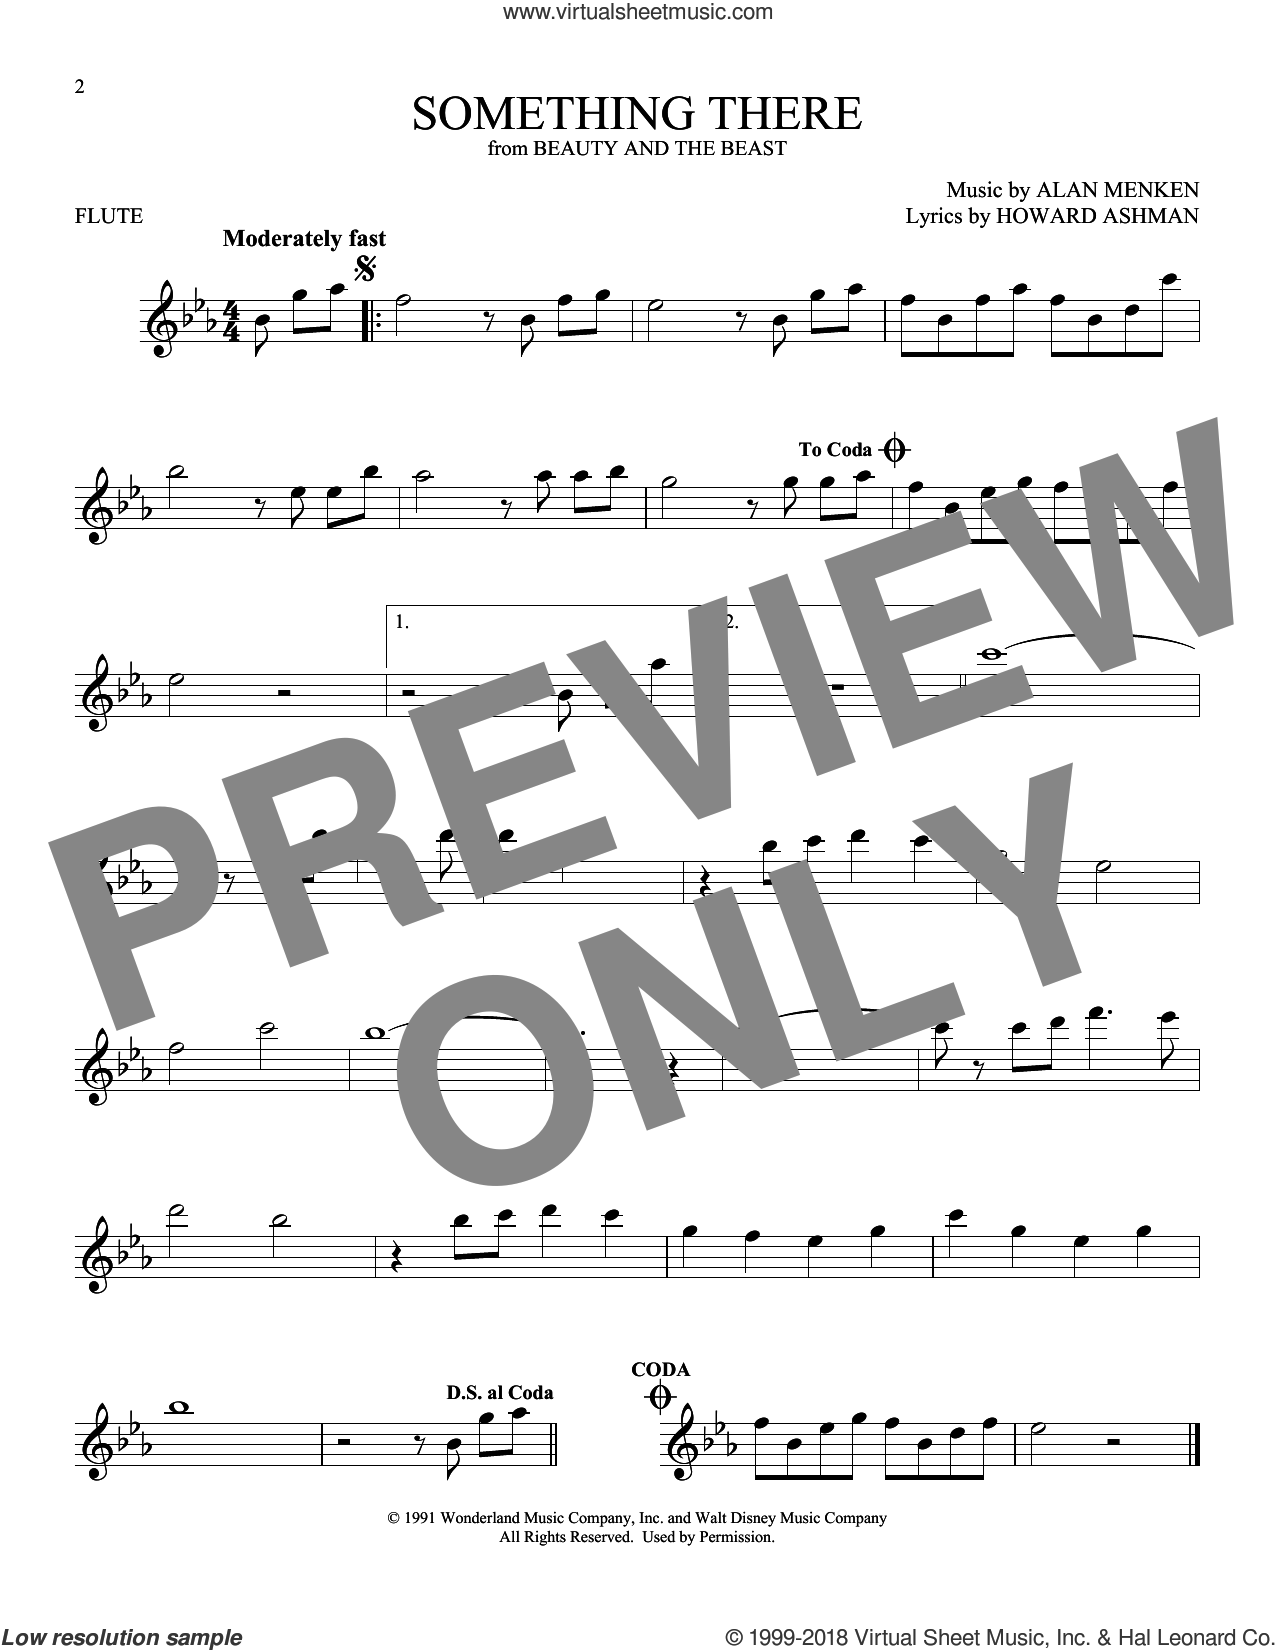 Something There (from Beauty And The Beast) sheet music for flute solo by Alan Menken and Howard Ashman, intermediate skill level